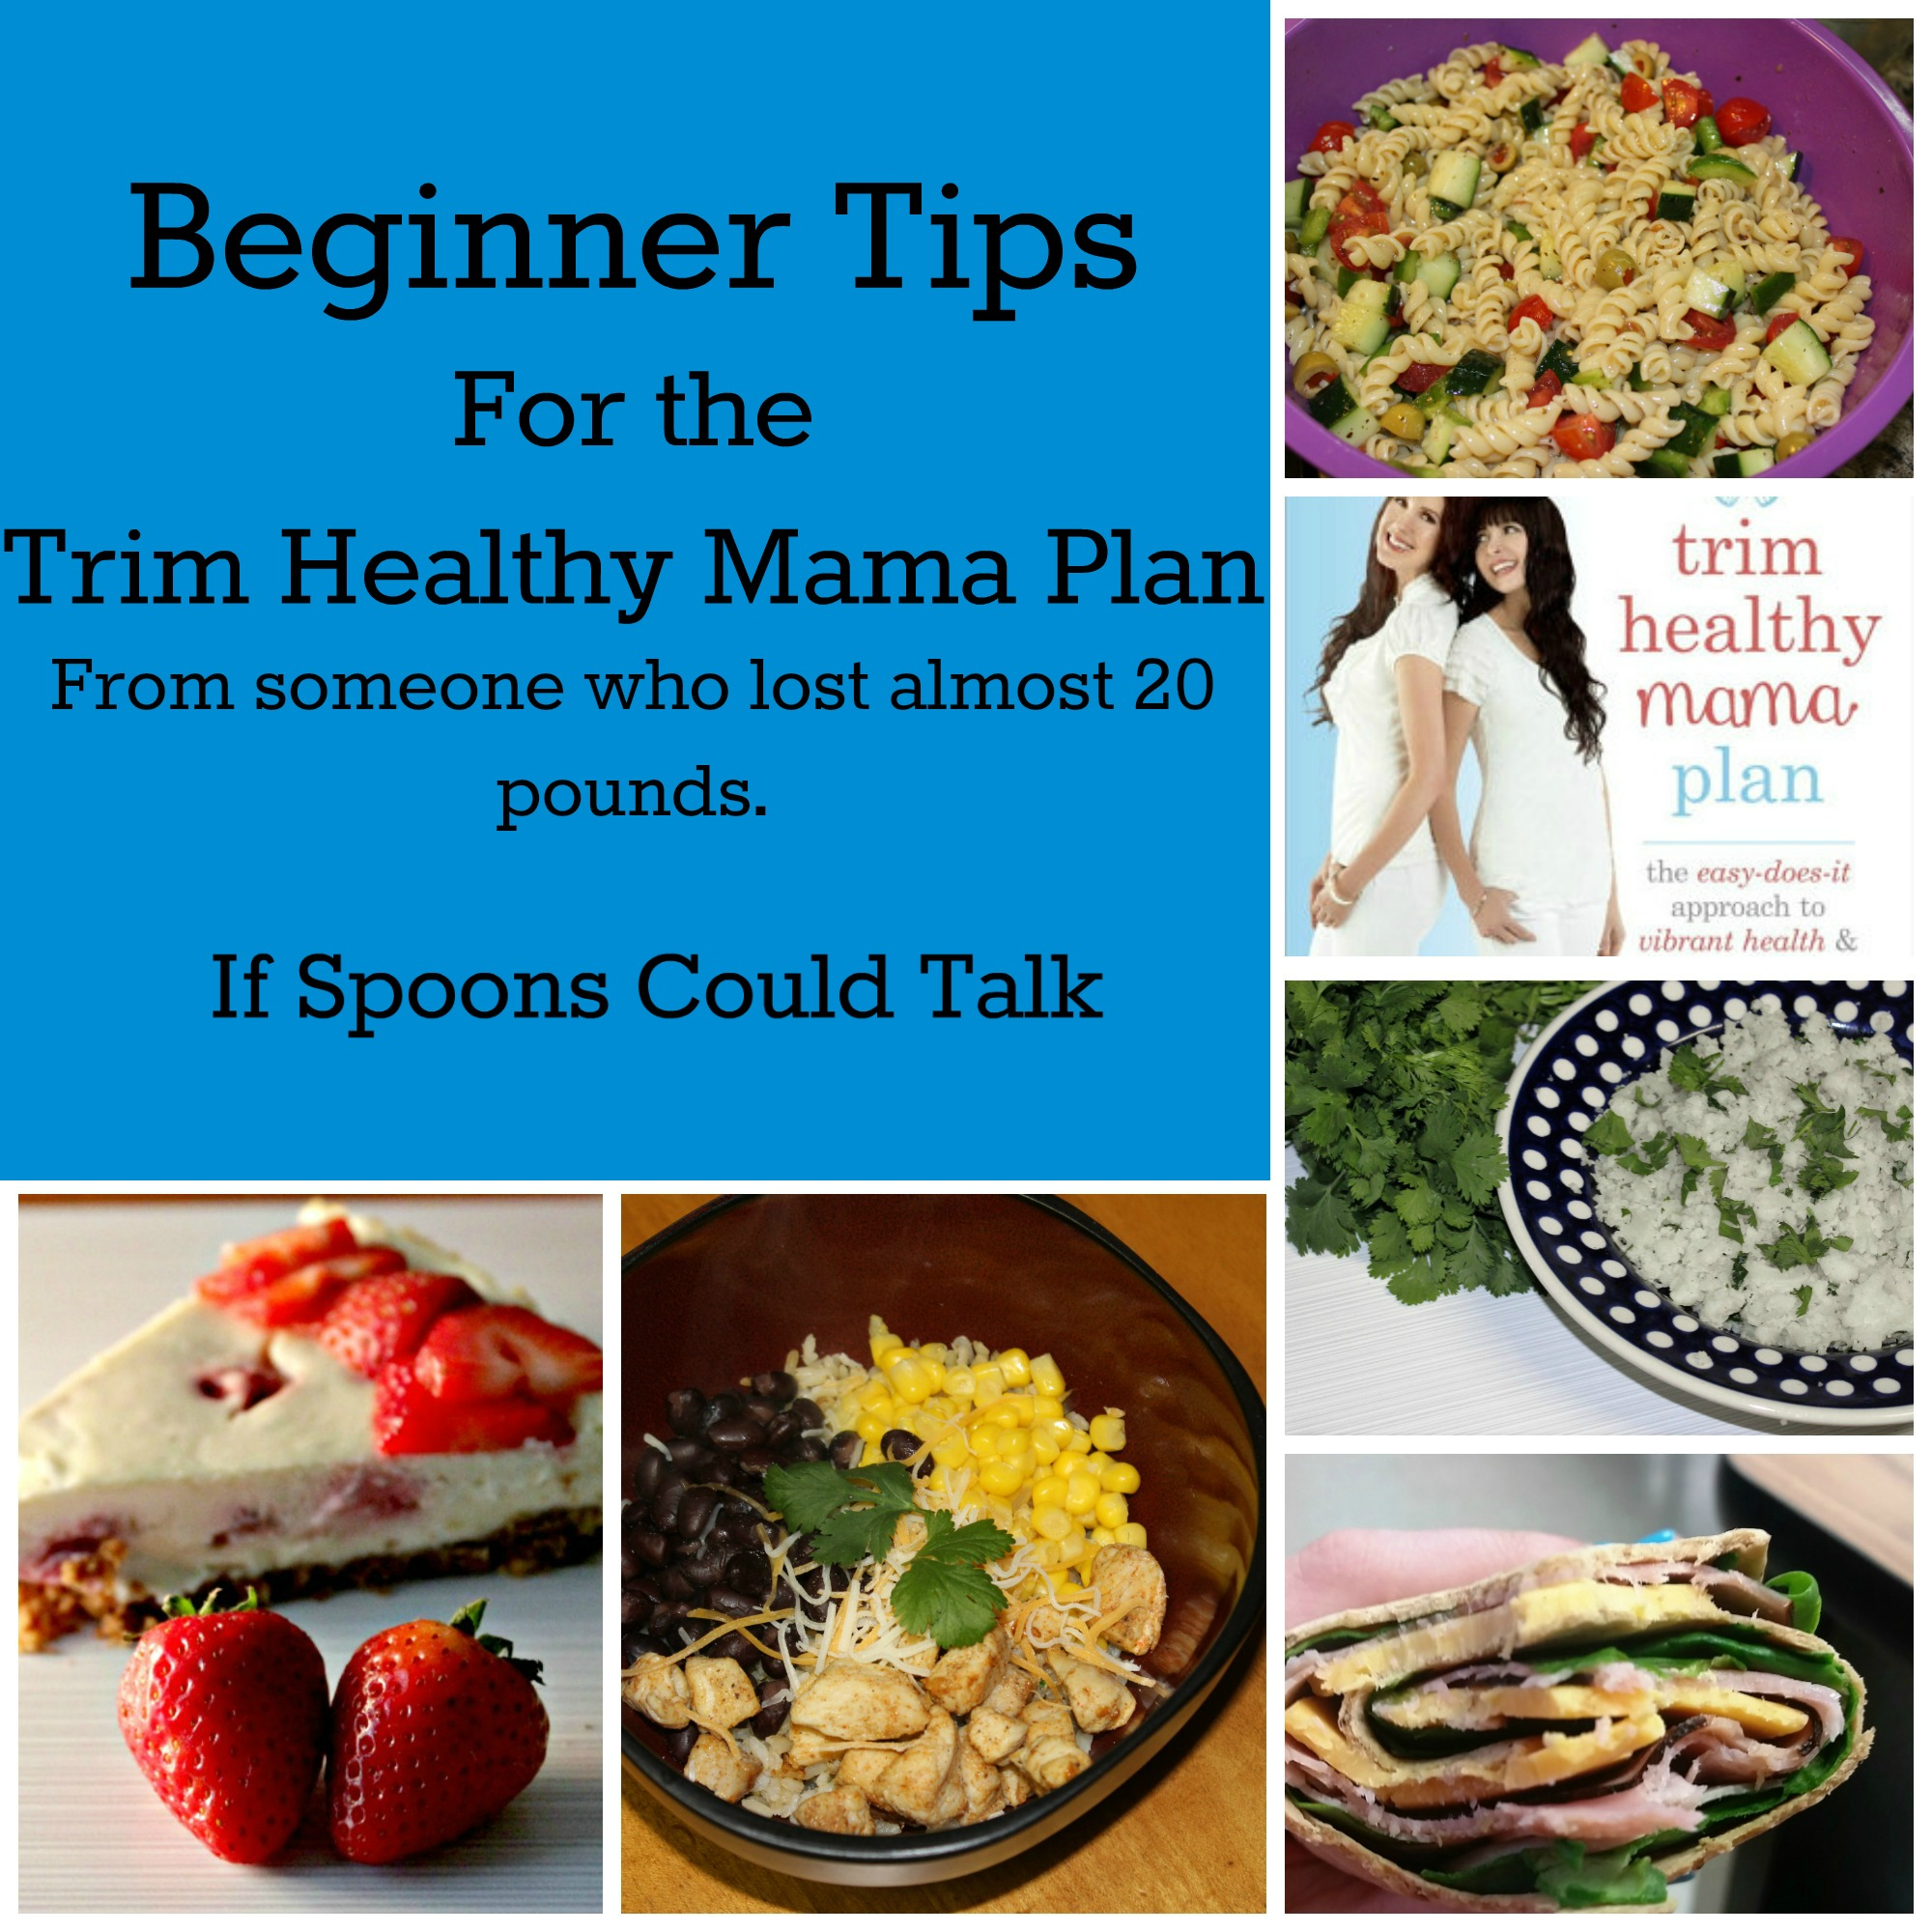 There Are Multiple Tips For Beginning The Trim Healthy Mama Plan Out But Everyone Is Different And What Works One Person May Not Work Another